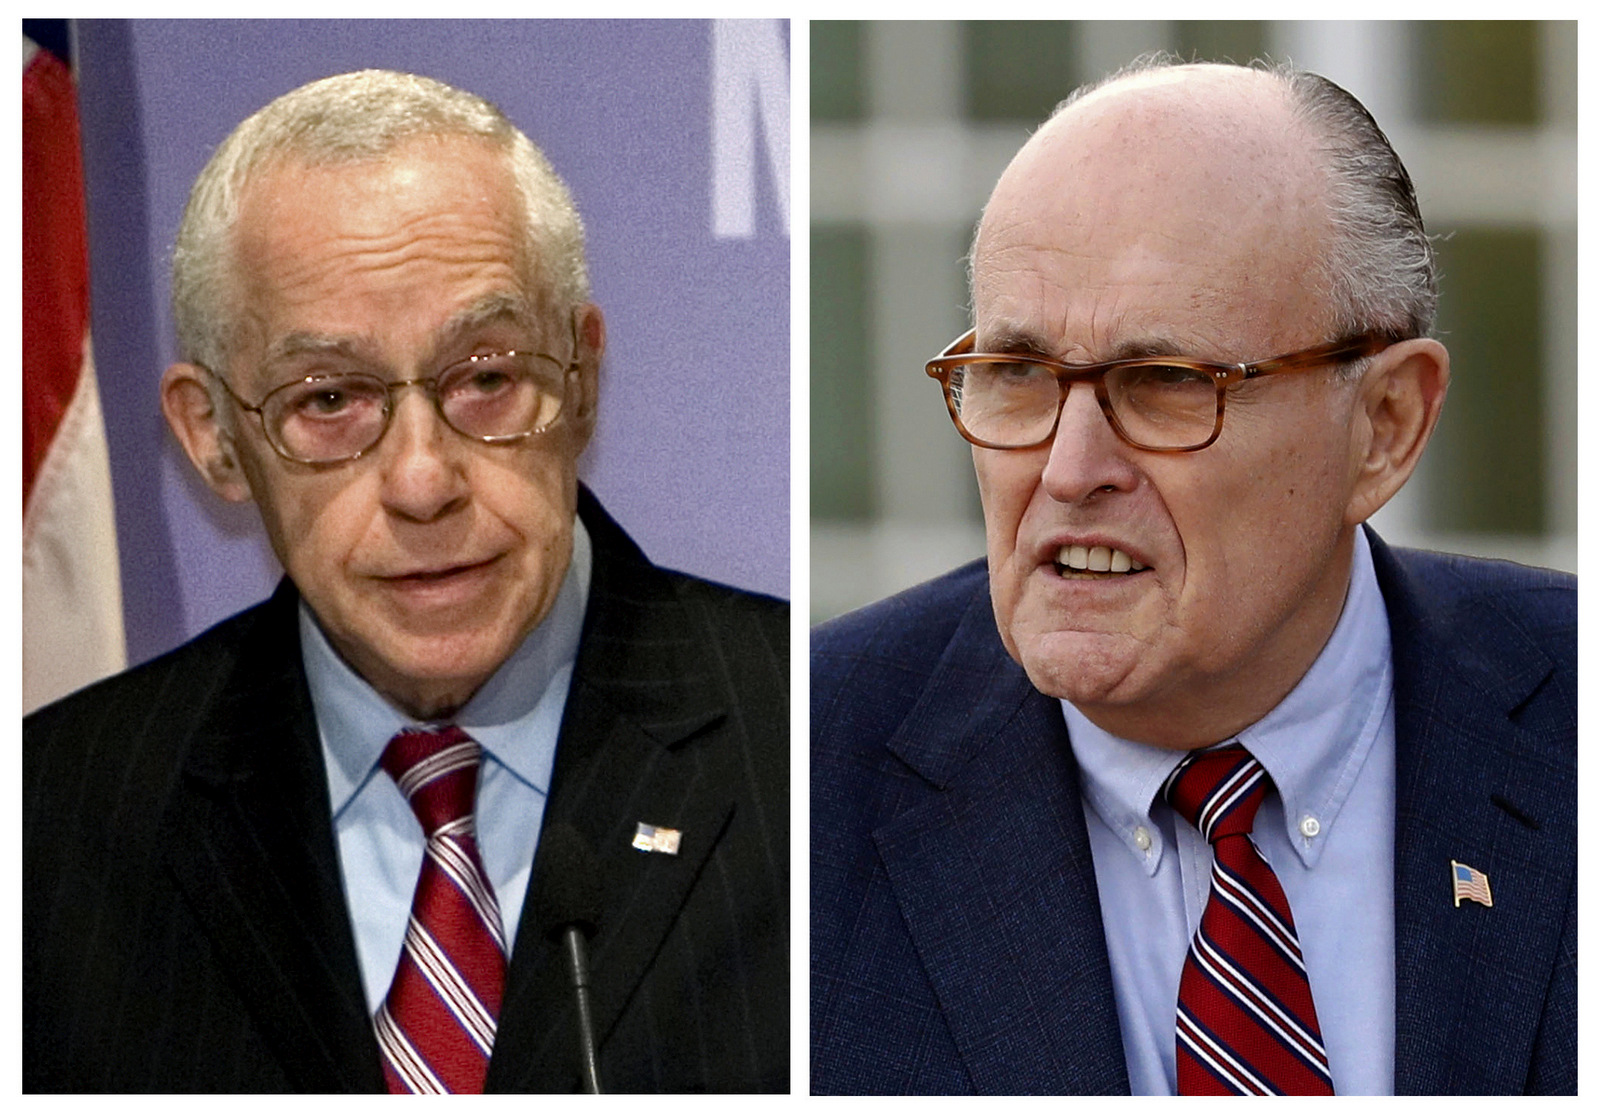 Then Attorney General Michael Mukasey, left, speaks at the U.S. Holocaust Memorial Museum in Washington on Dec. 16, 2008 and former New York Mayor Rudy Giuliani arrives for meetings with President-elect Donald Trump on Nov. 20, 2016, in Bedminster, N.J. (AP/J. Scott Applewhite, left, and Carolyn Kaster)